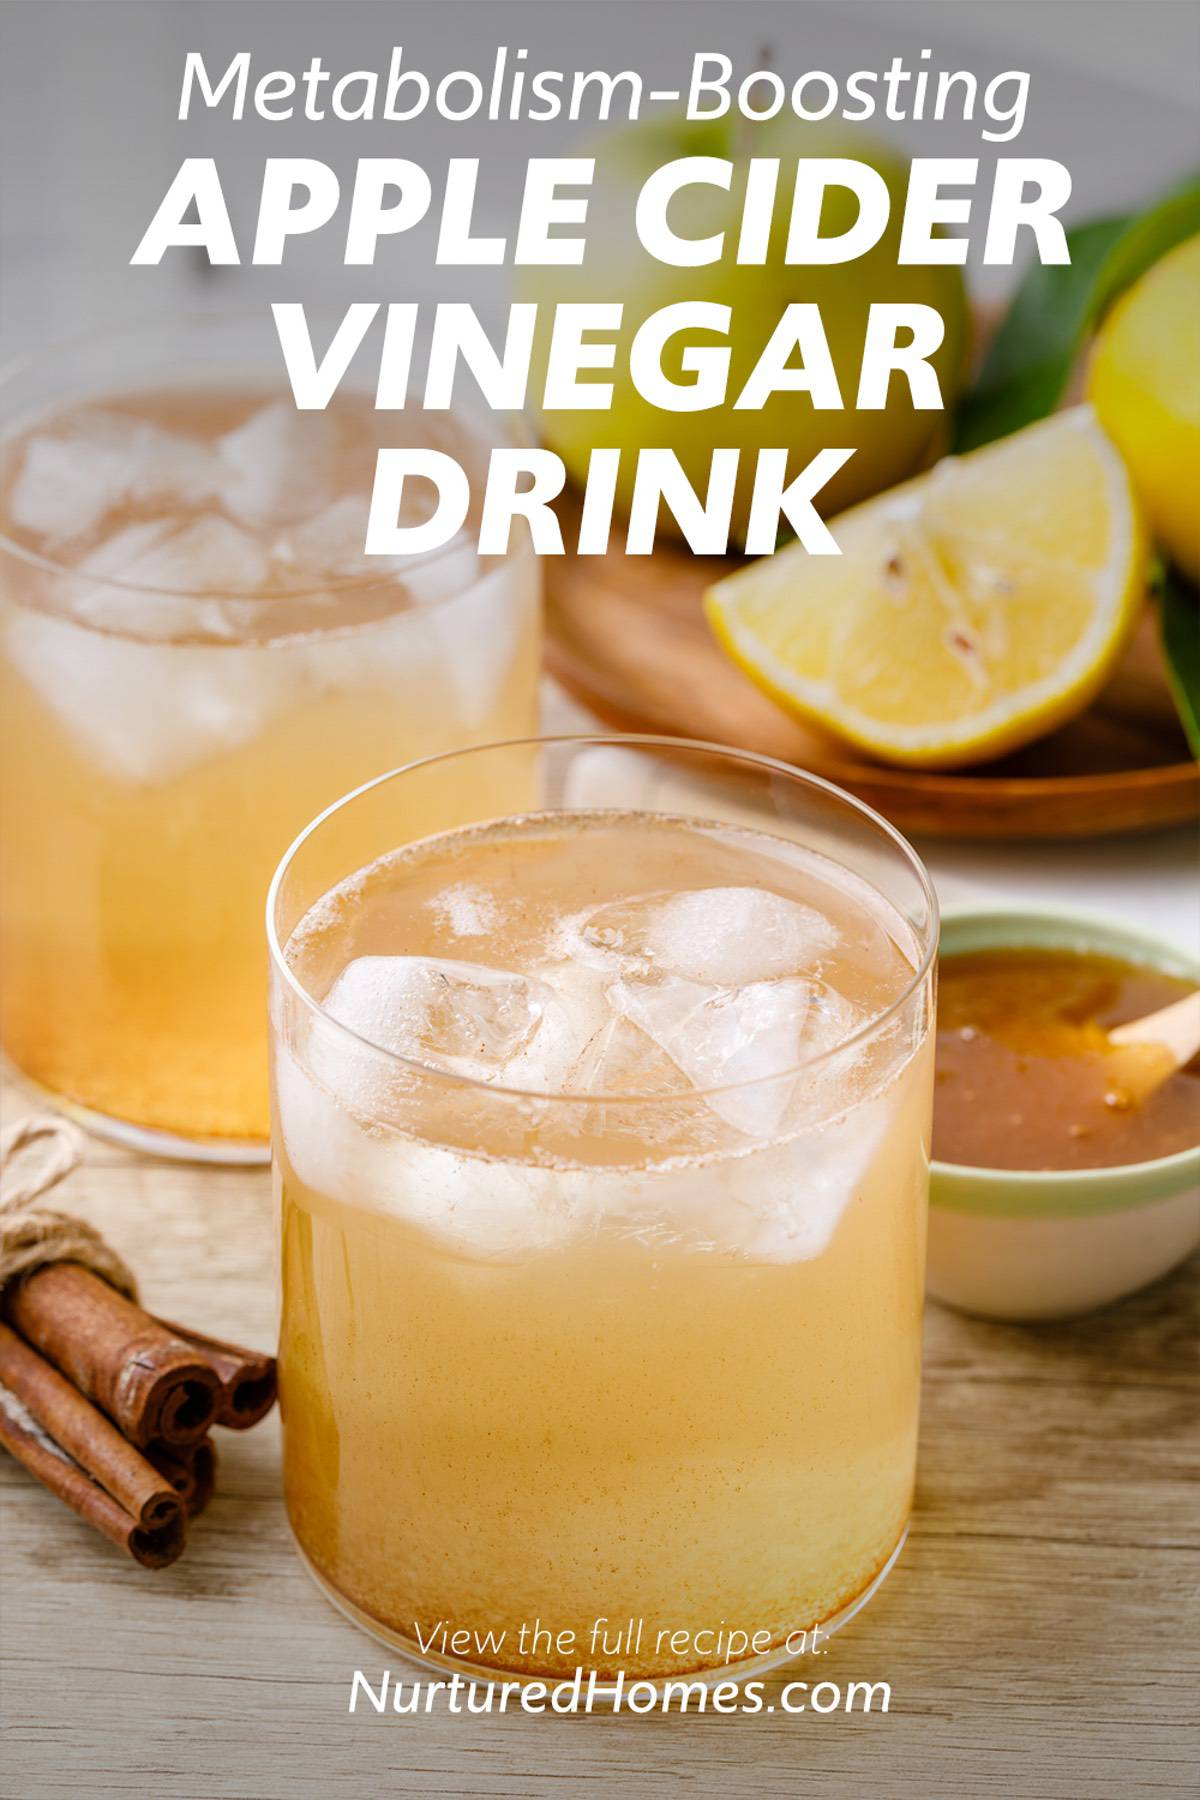 4-Ingredient Apple Cider Vinegar Drink for Weight Loss